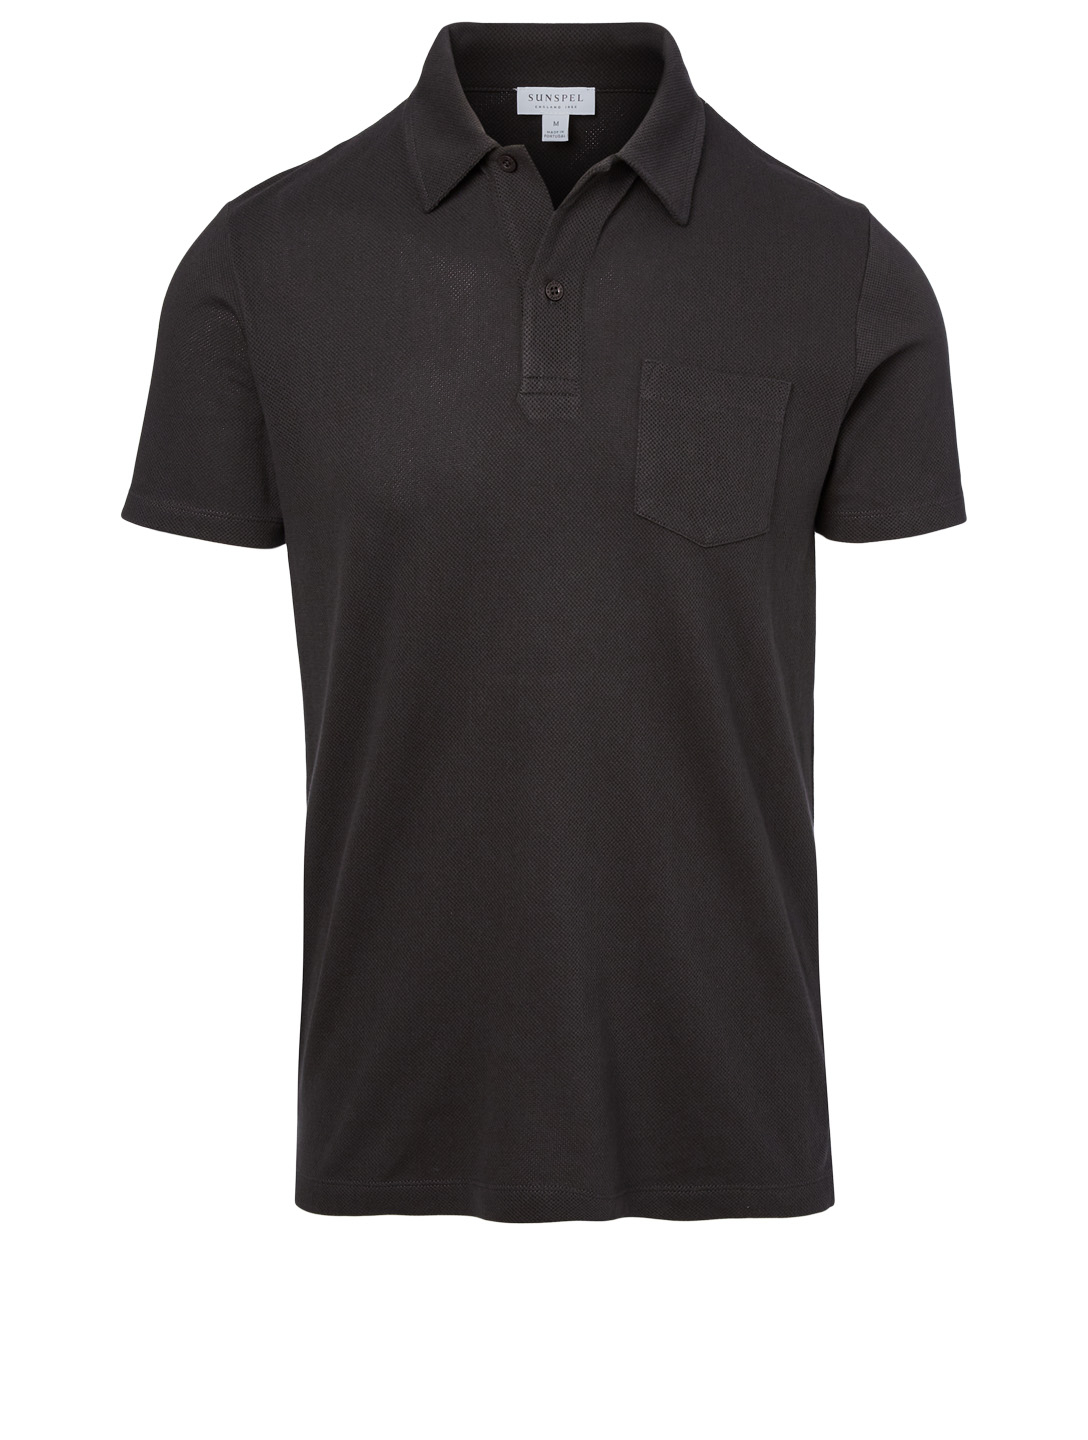 SUNSPEL Riviera Cotton Polo Shirt Men's Black